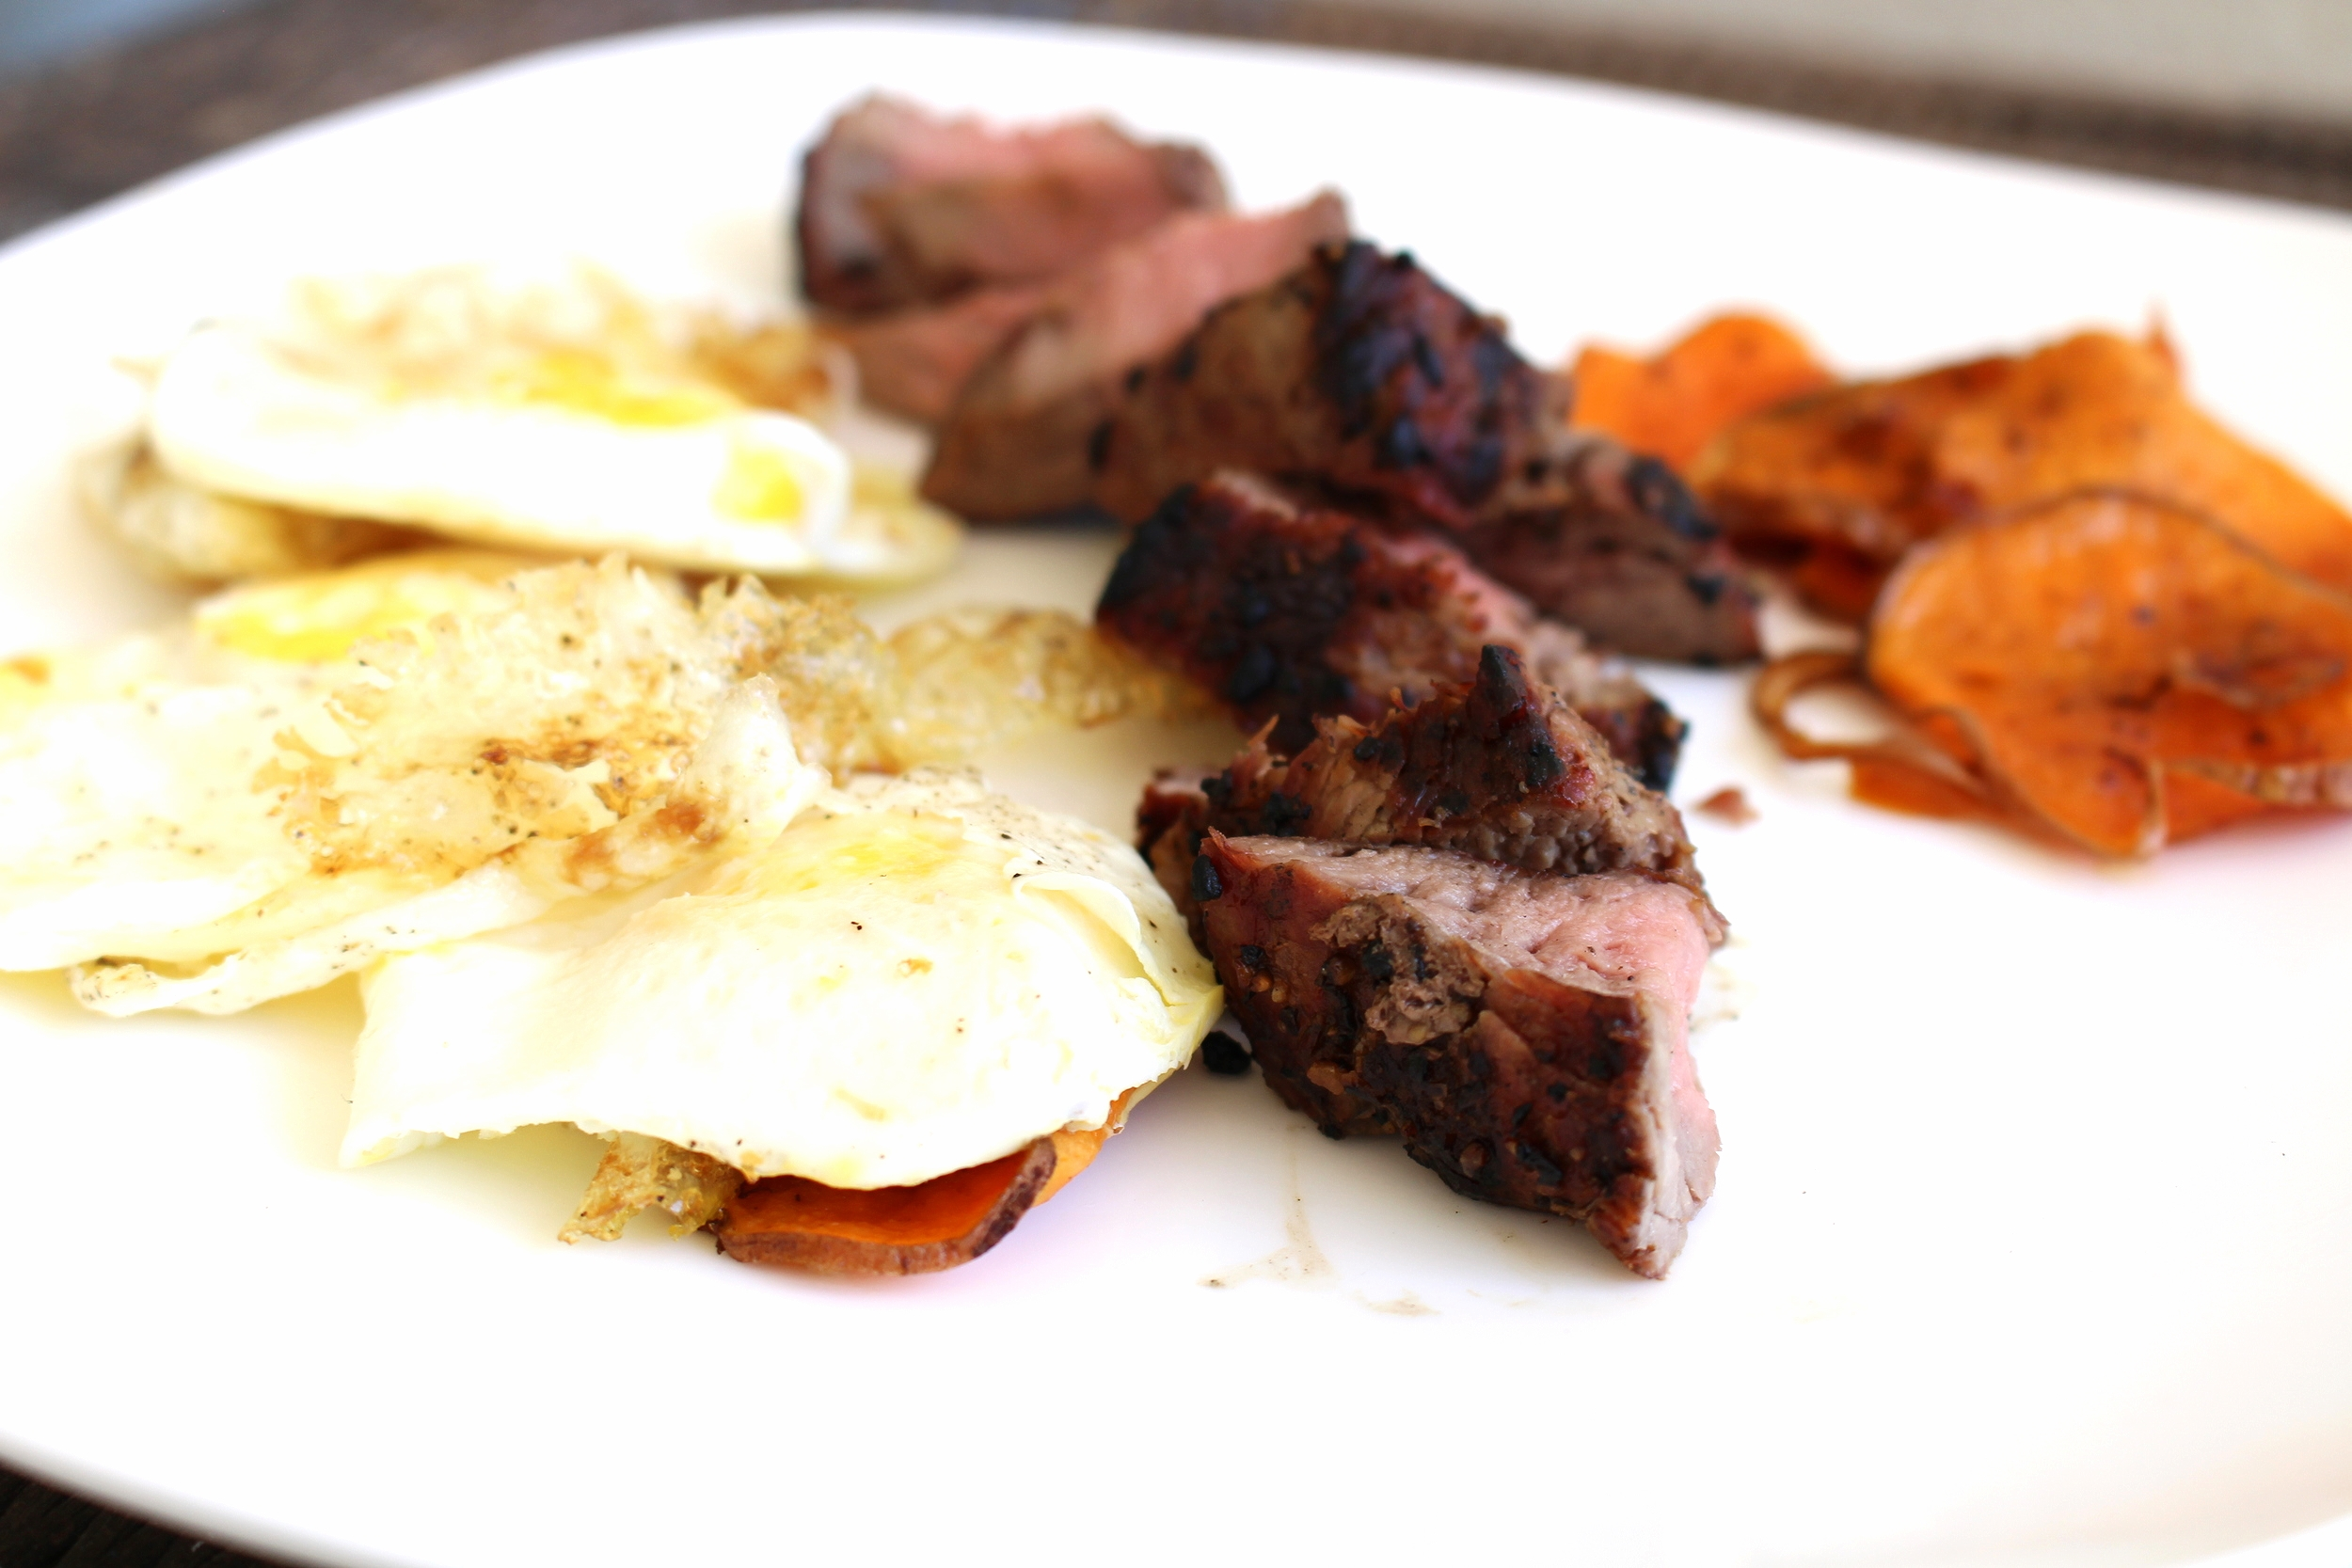 Bfast! Over Medium Eggs, Steak, Sweet Potatoes Sautéed in Olive Oil